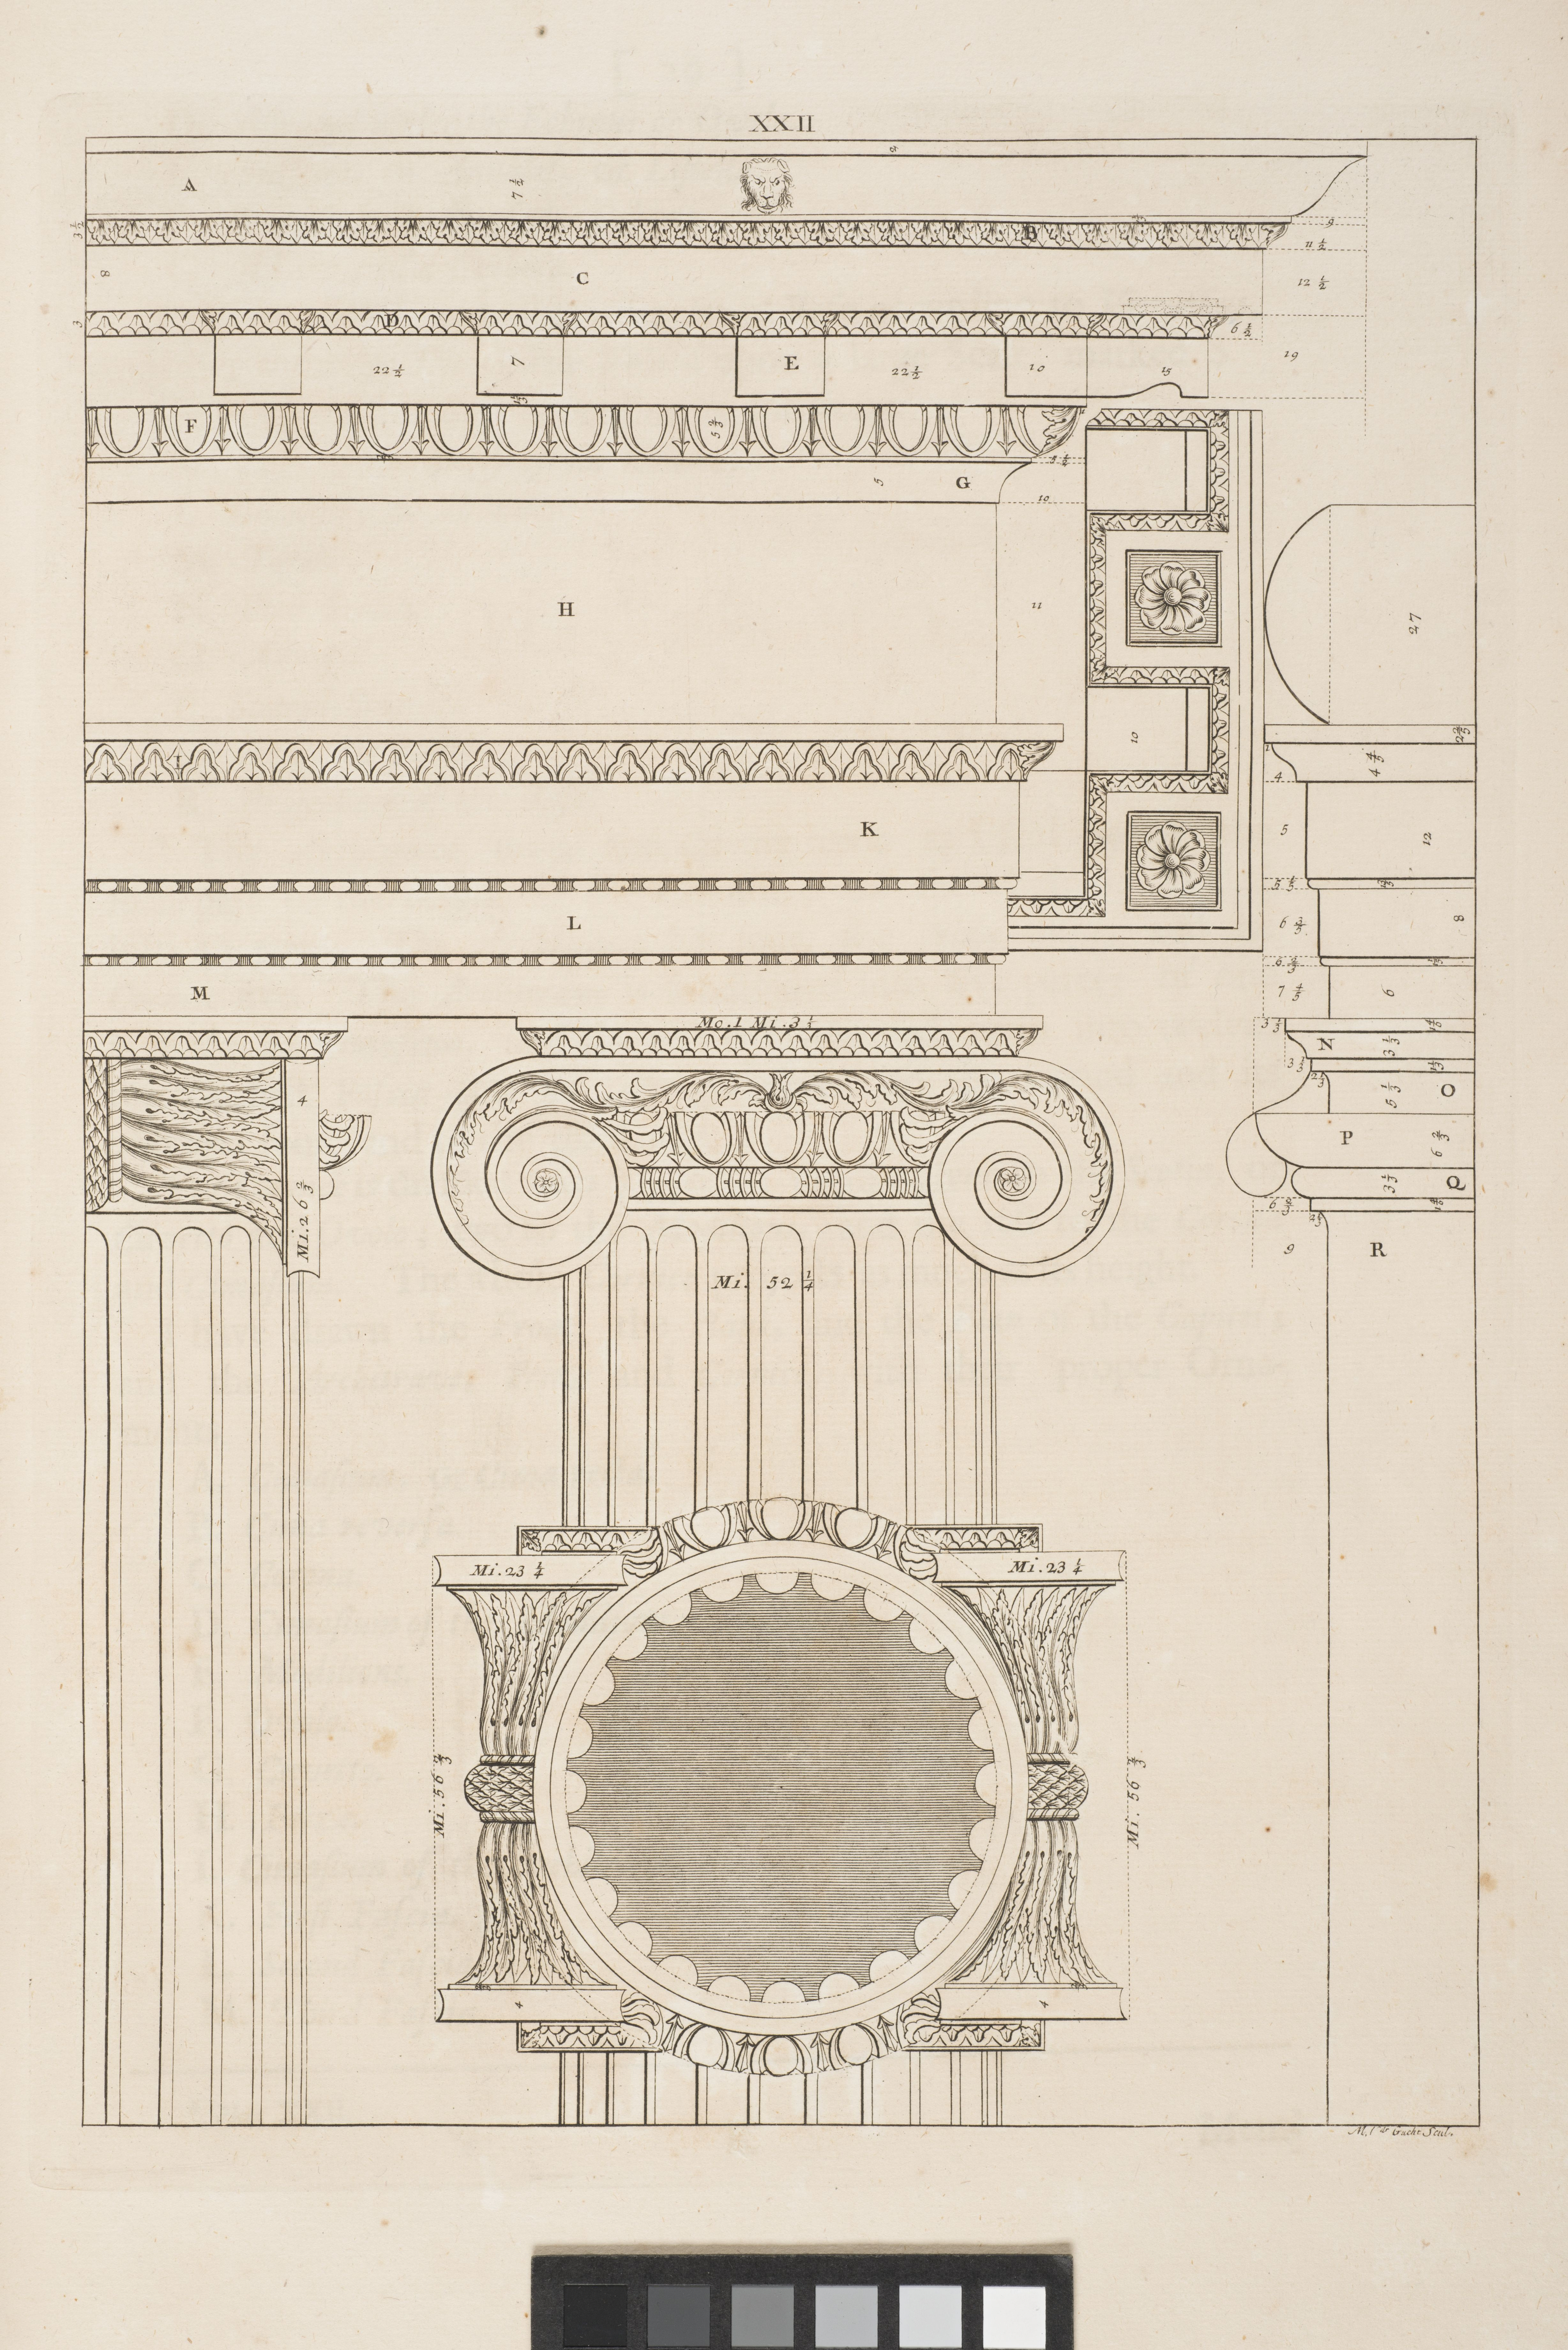 The architecture of A. Palladio